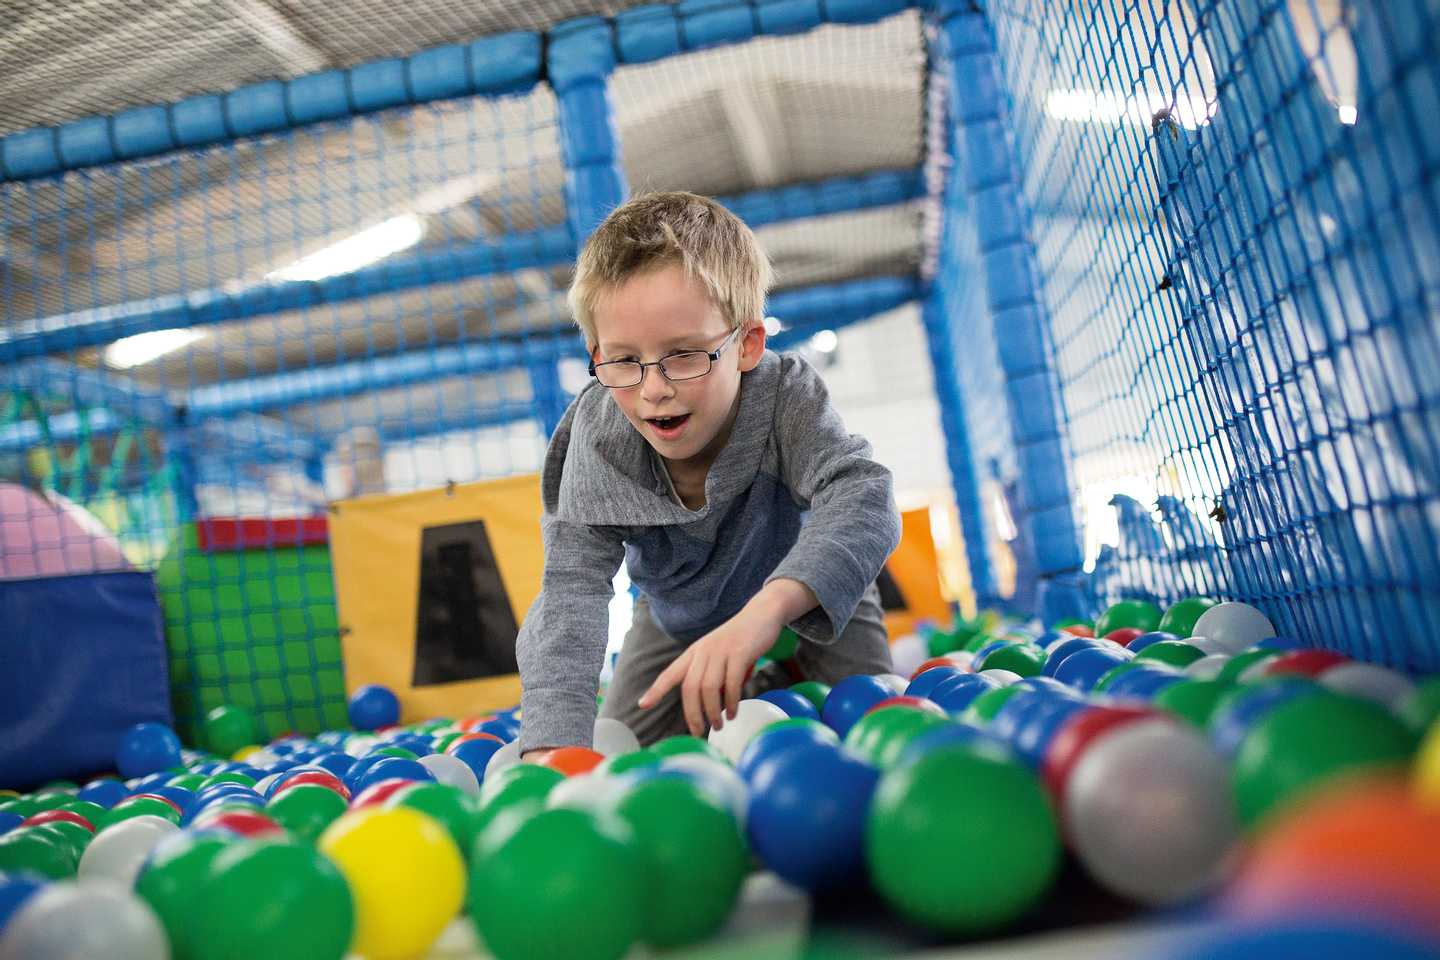 A child playing in the ball pit in the soft play area